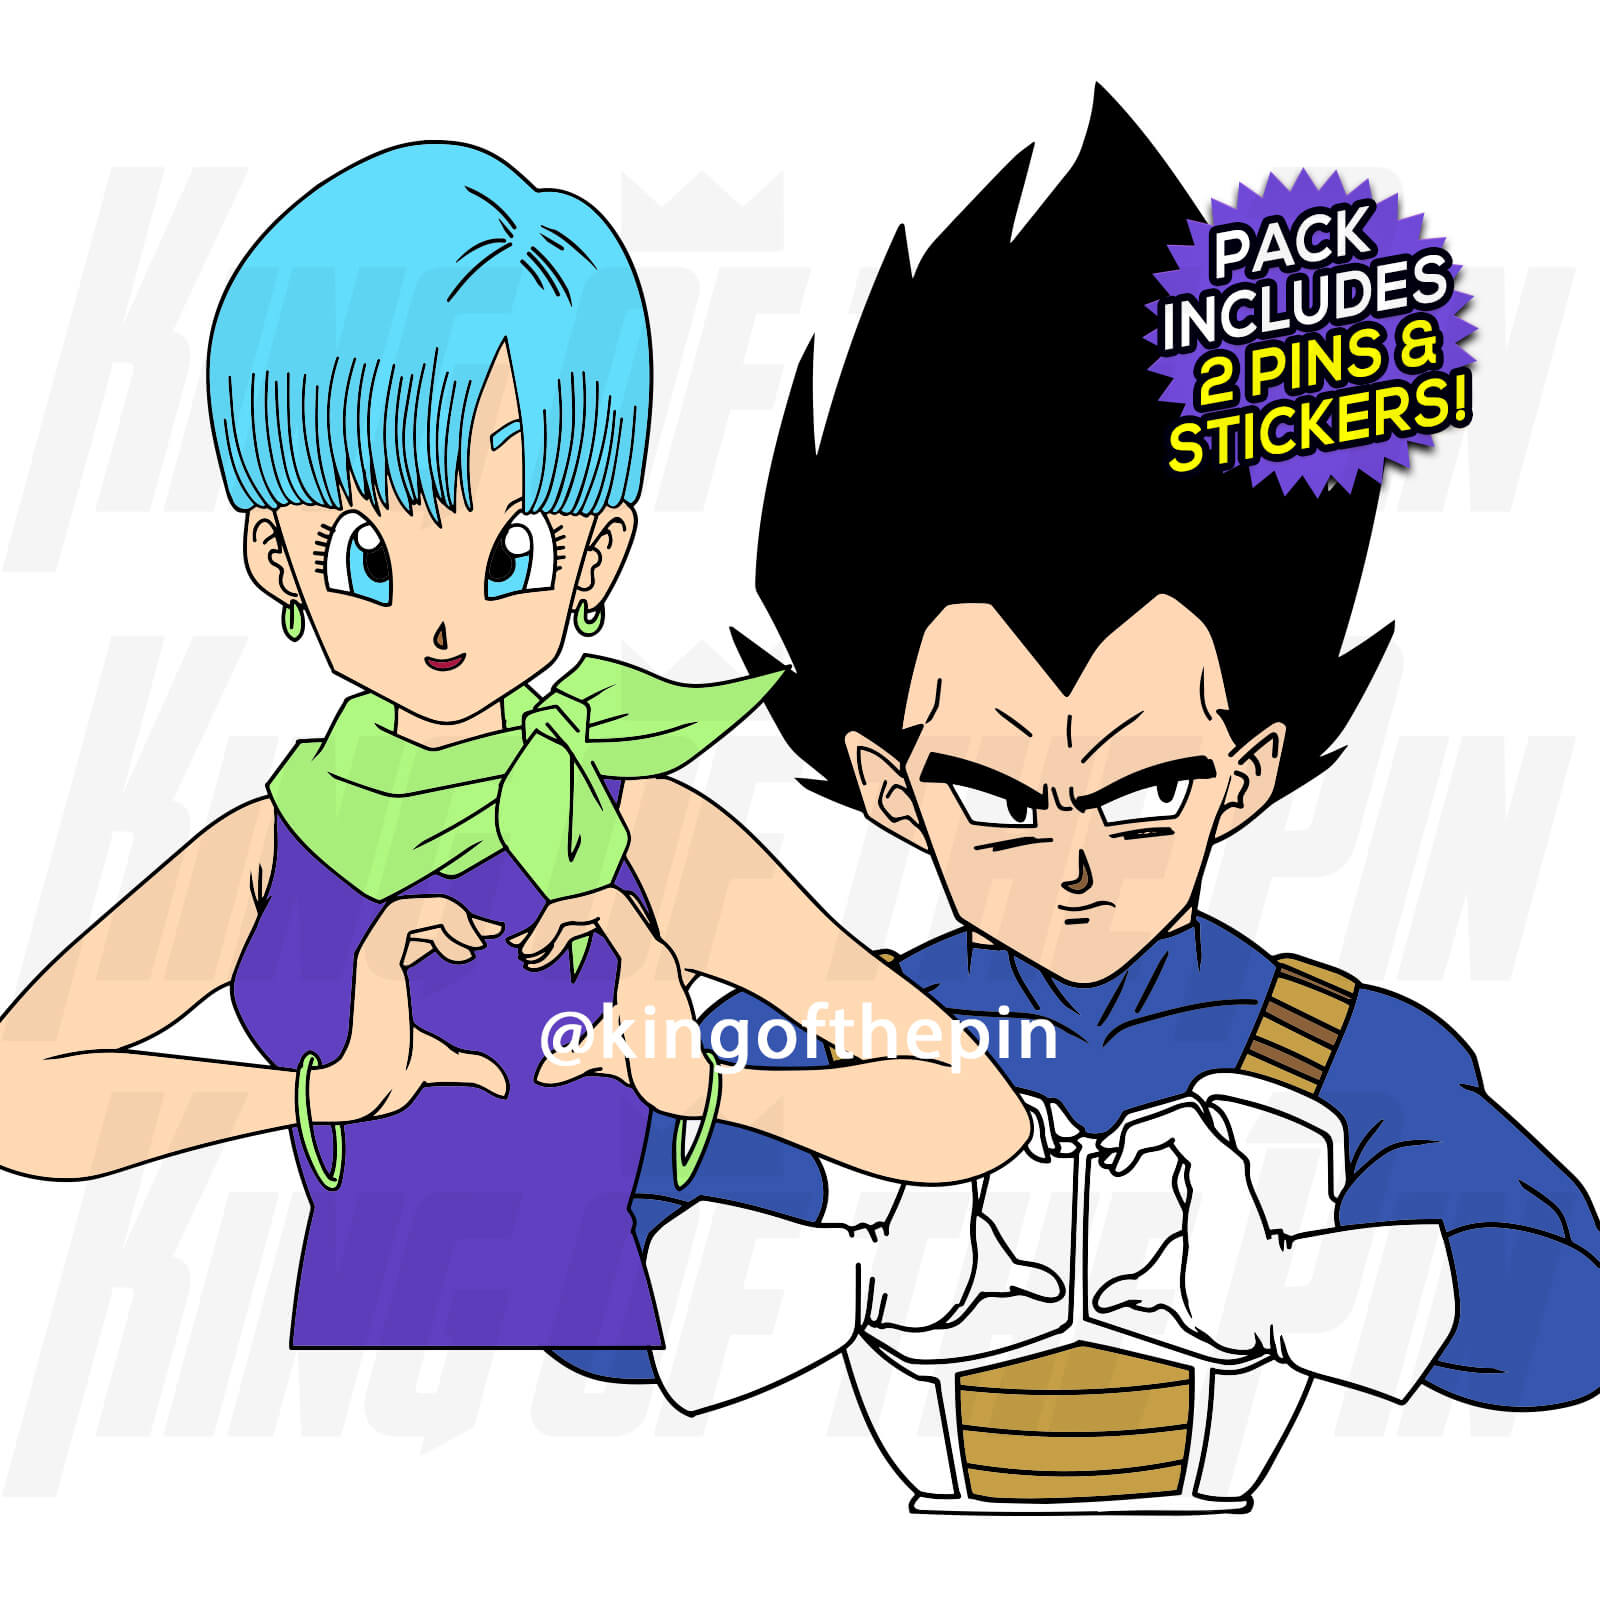 Bulma & Vegeta - Do You Love Me? (2 Pin) Pin Pack [Includes 2 FREE Stickers]